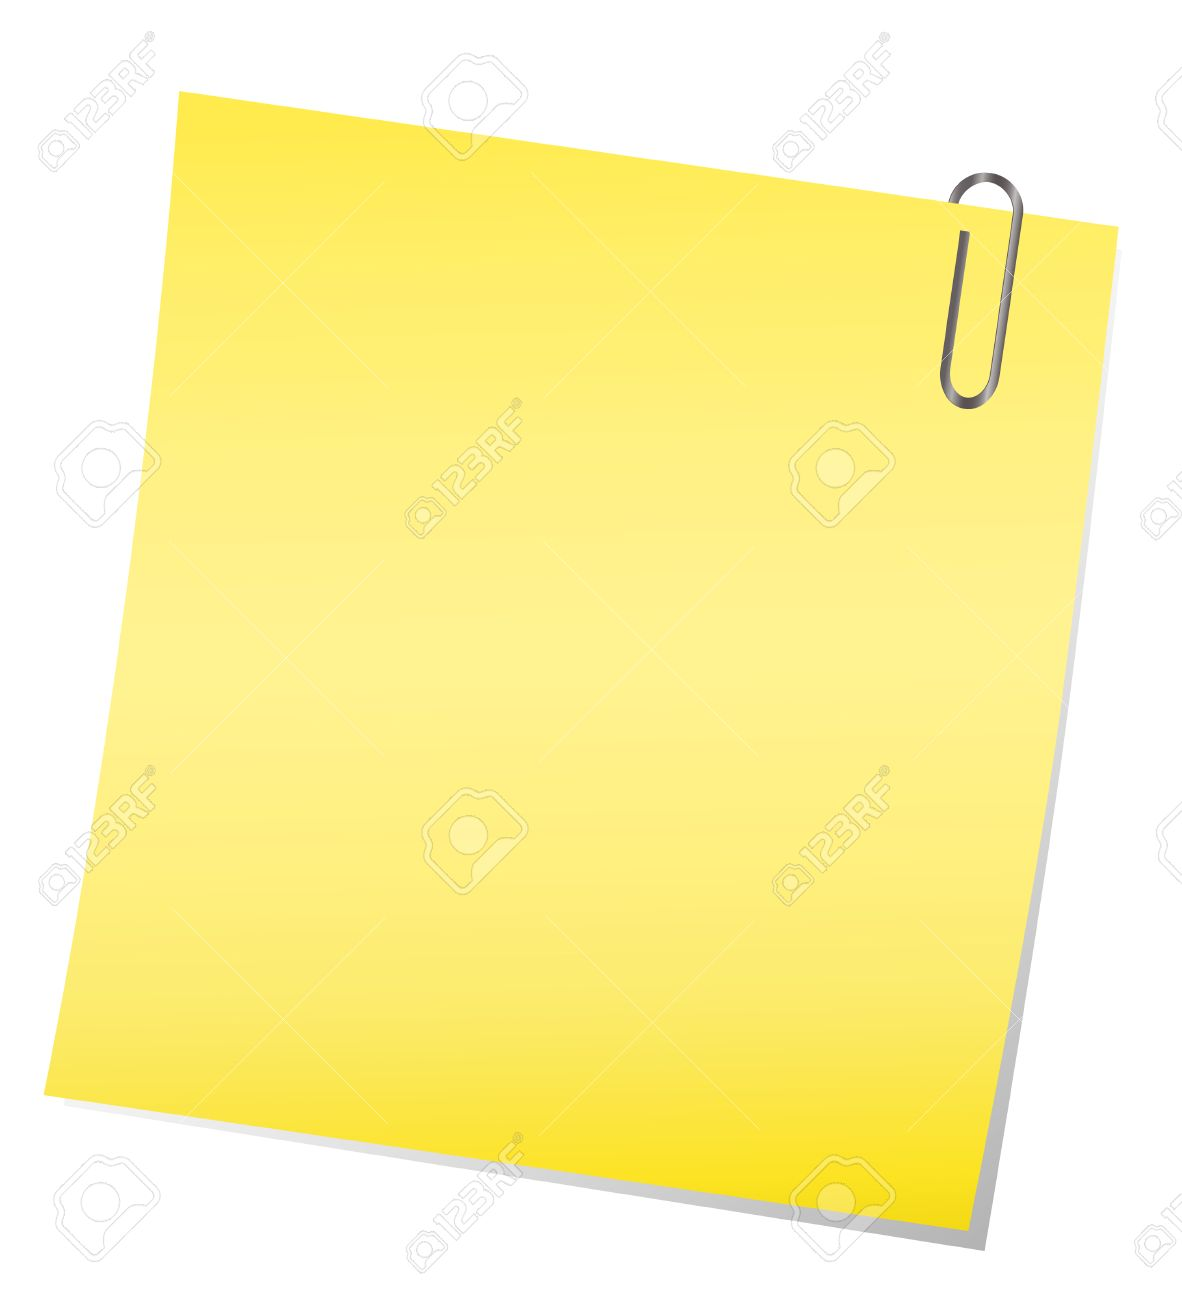 Free vector graphic sticky note note info paper free image on - Yellow Sticky Note With Paper Clip Stock Vector 6748082